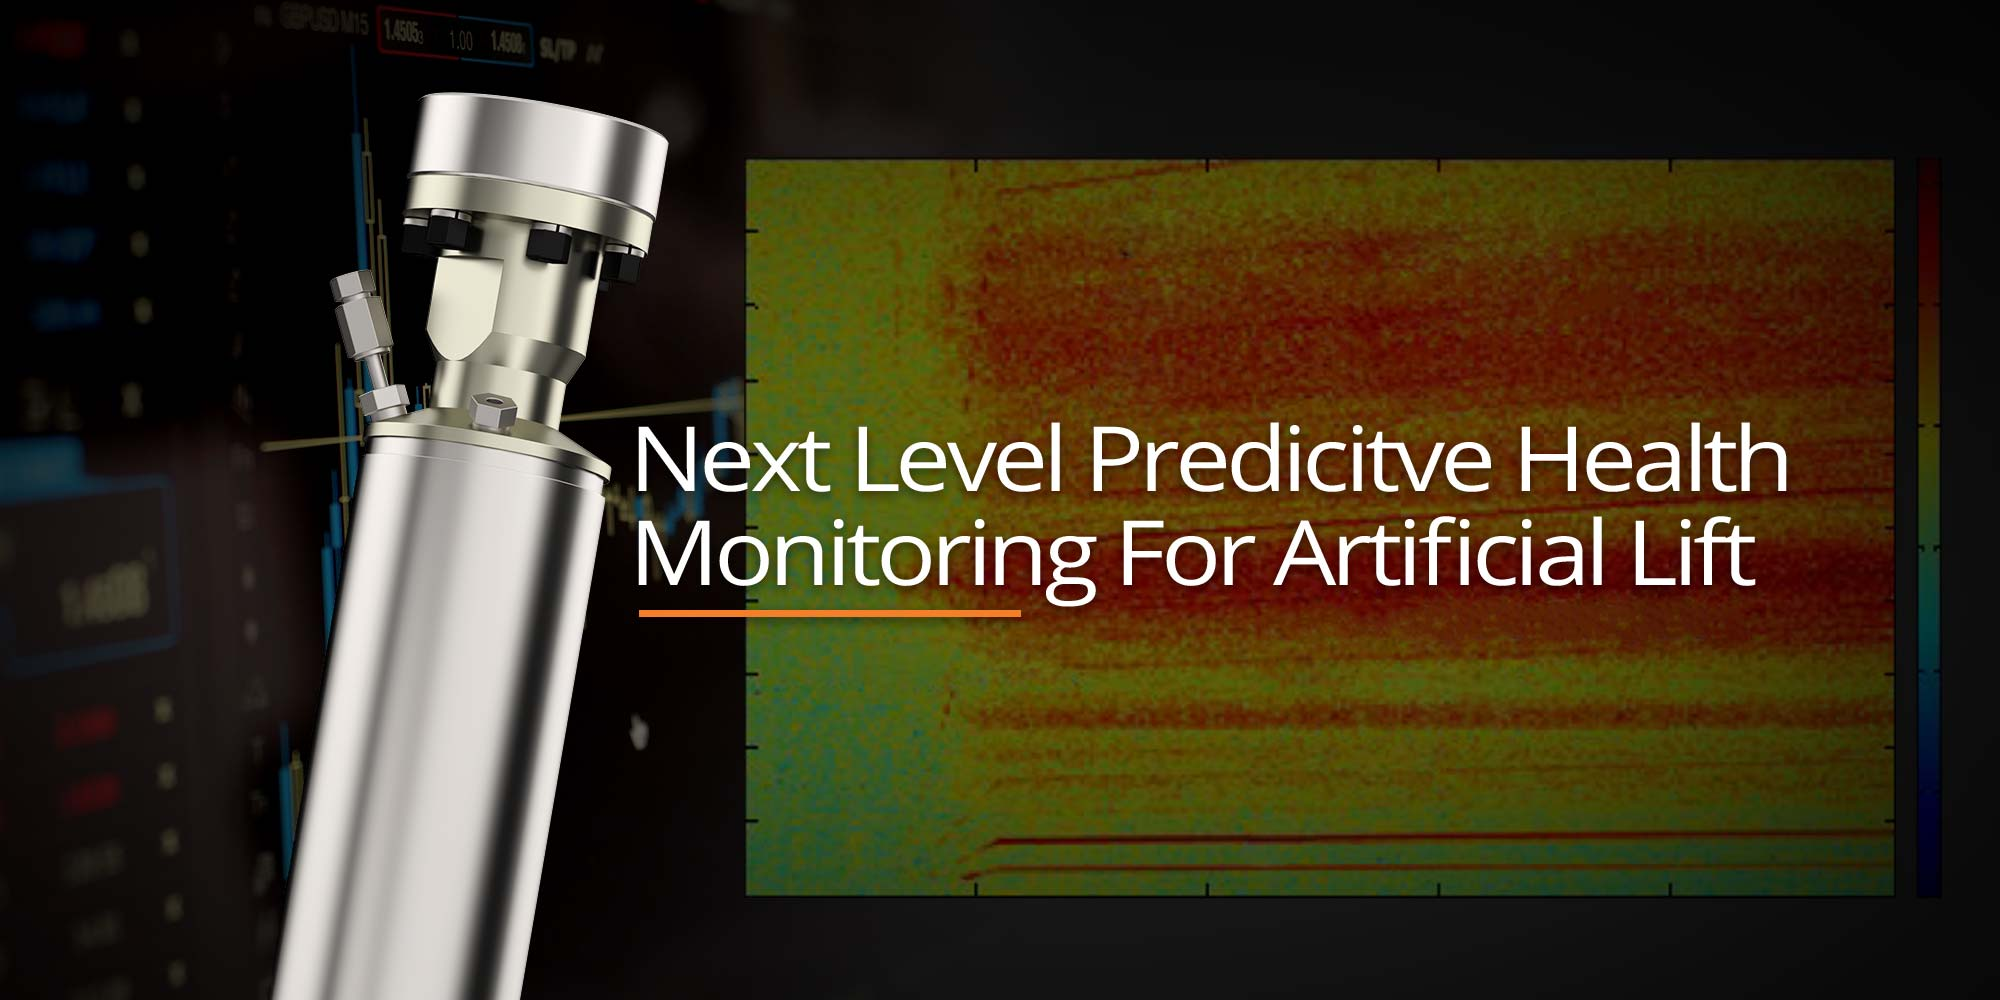 Next Level Predictive Health Monitoring For Artificial Lift